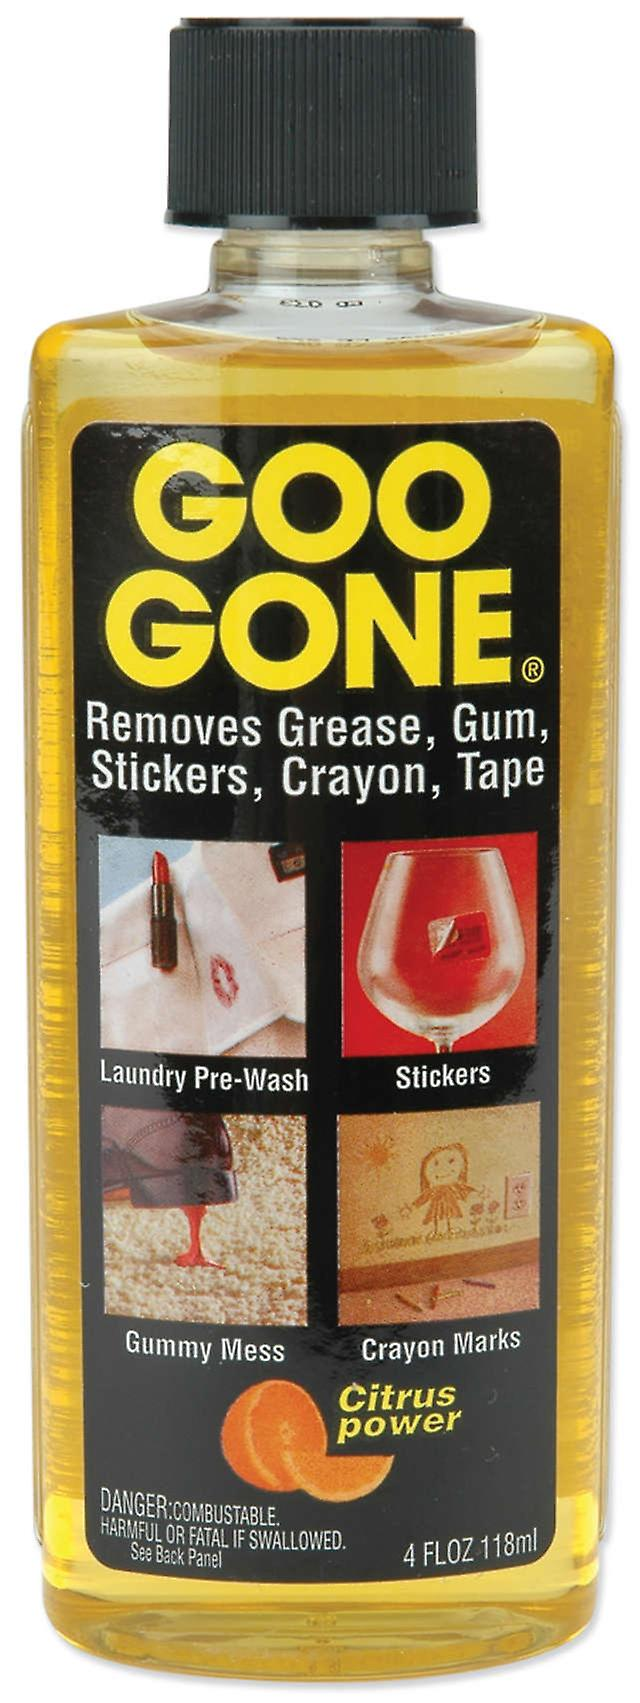 Goo Gone Remover Citrus Power 4 Ounces Gg44